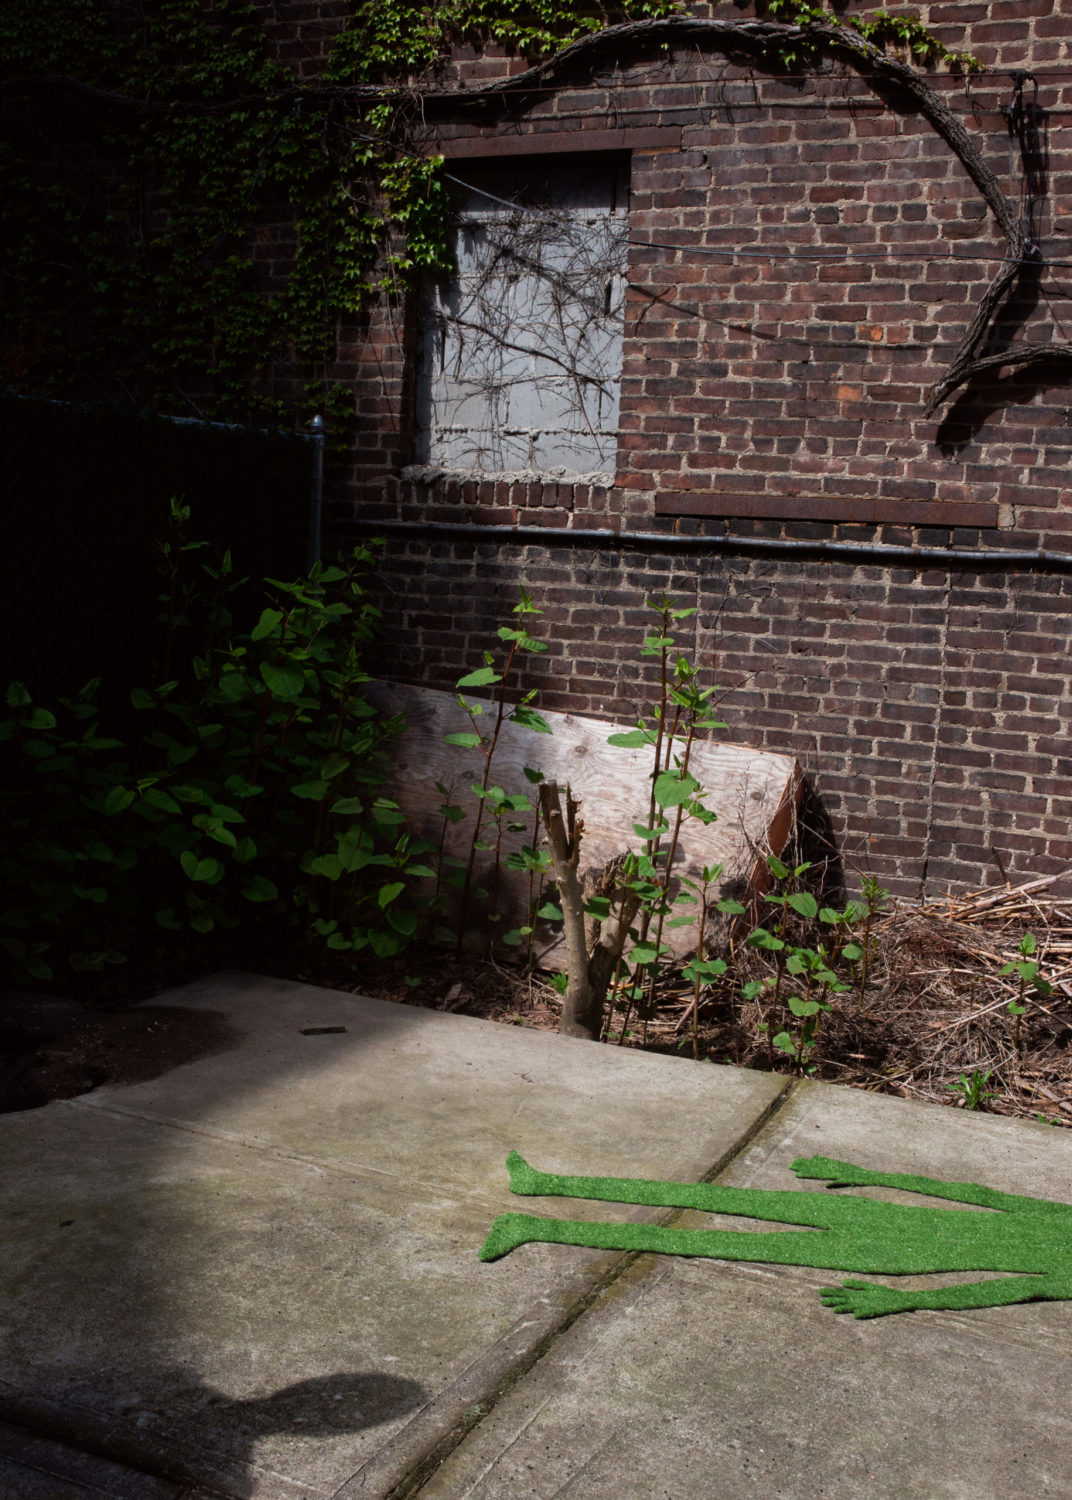 image of a brick overgrown courtyard maybe outside of a New York apartment building. A turf green human body cut out lies on the concrete floor and is coming from the right side of the frame. A shadow of another human figure, shoulders and head only, comes out of the left side of the frame. Image is lit dramatically with sunlight and the green pops among shades of grey and brown.